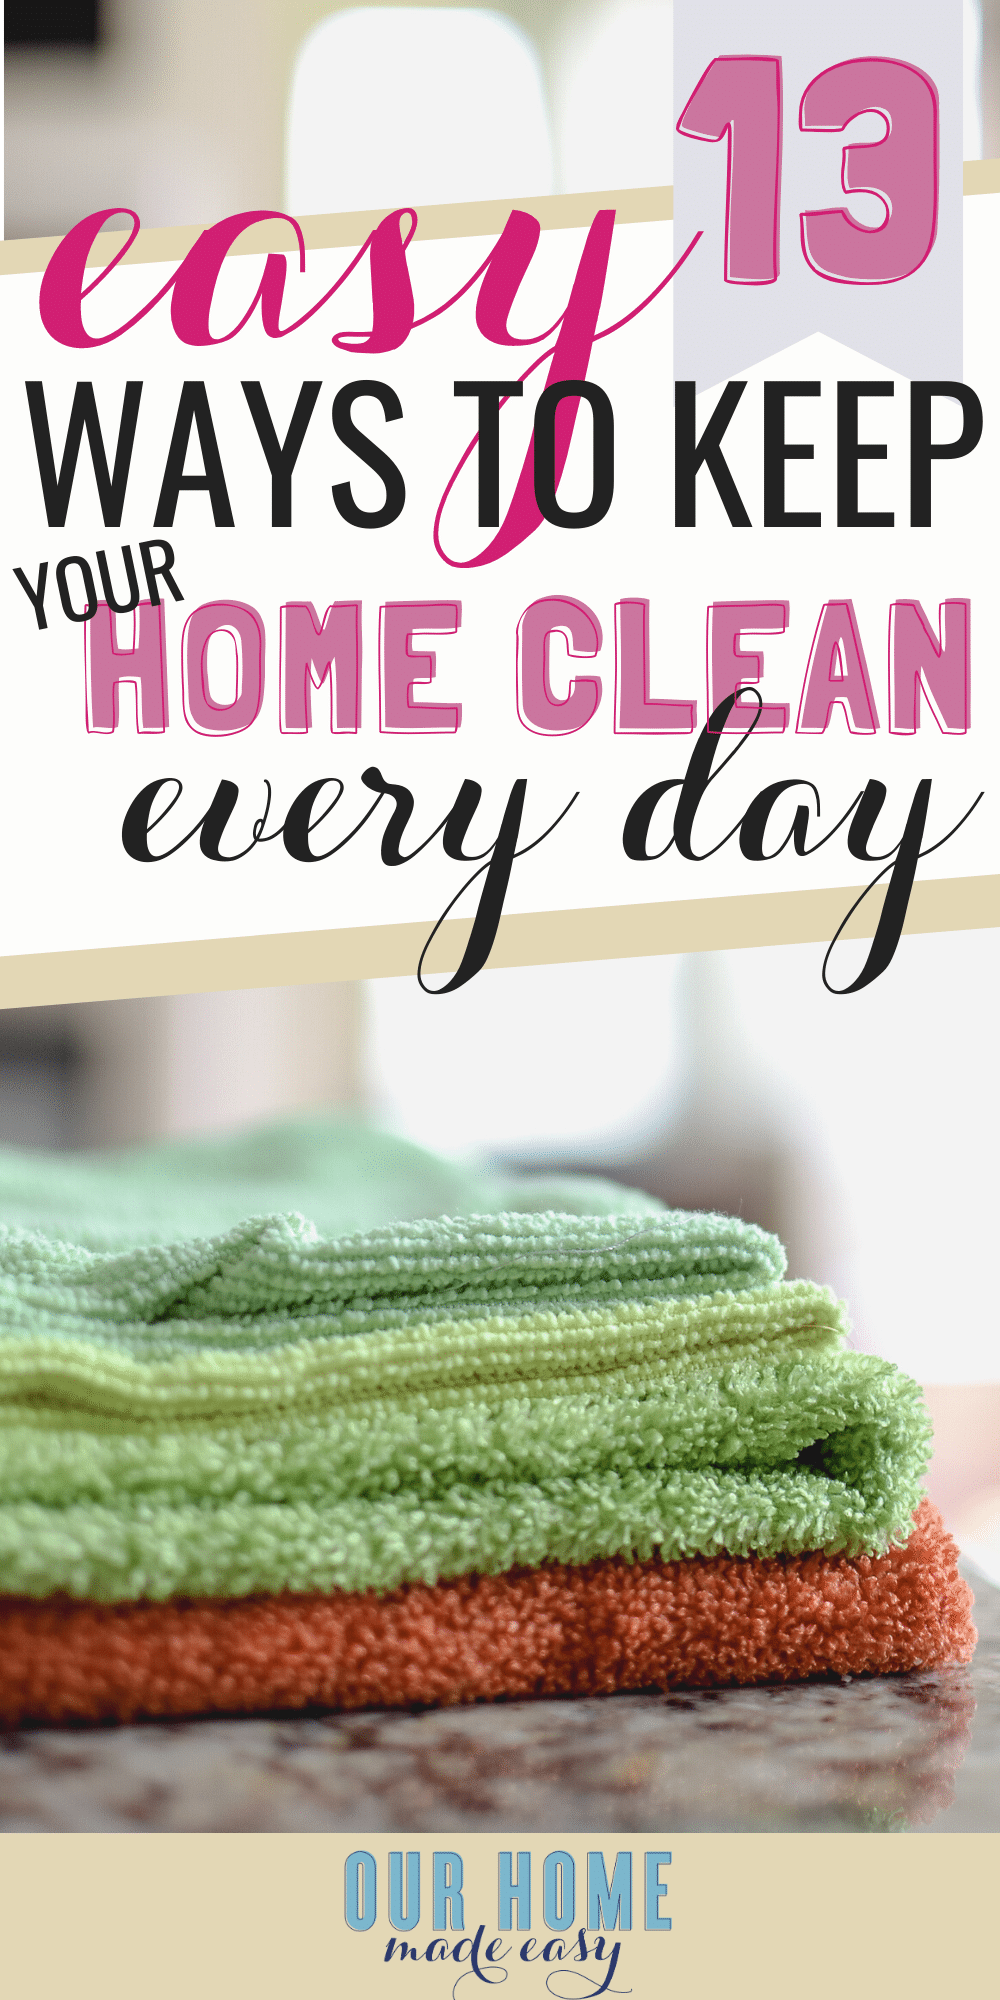 how to keep a home clean and tidy